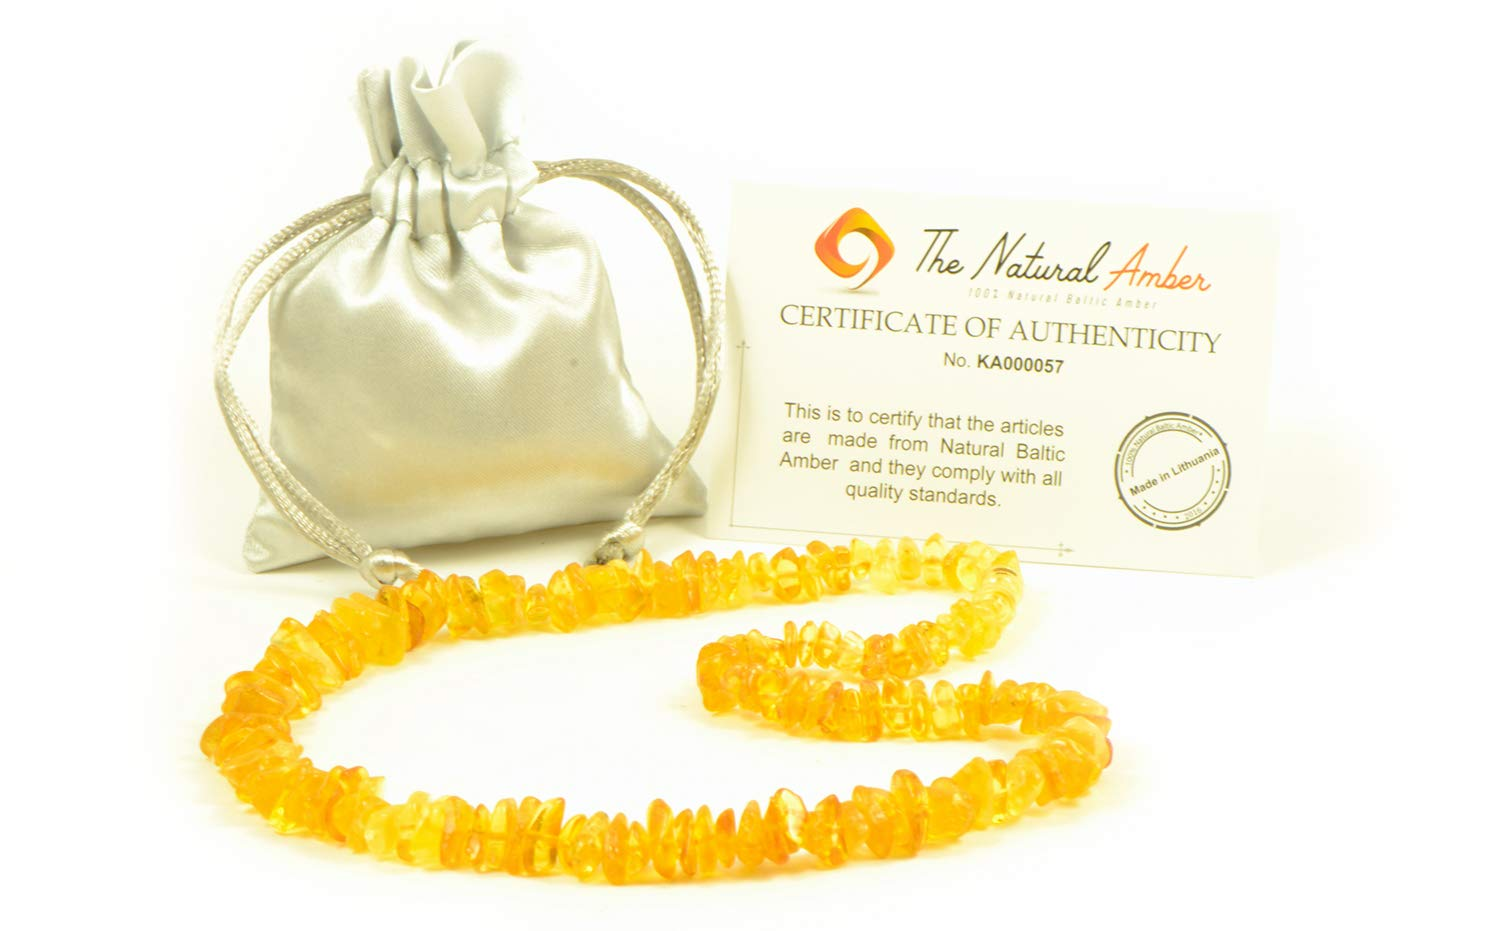 Genuine Chip Shape Baltic Amber Beads Baltic Amber Necklace for Adults Cherry 19.7inch